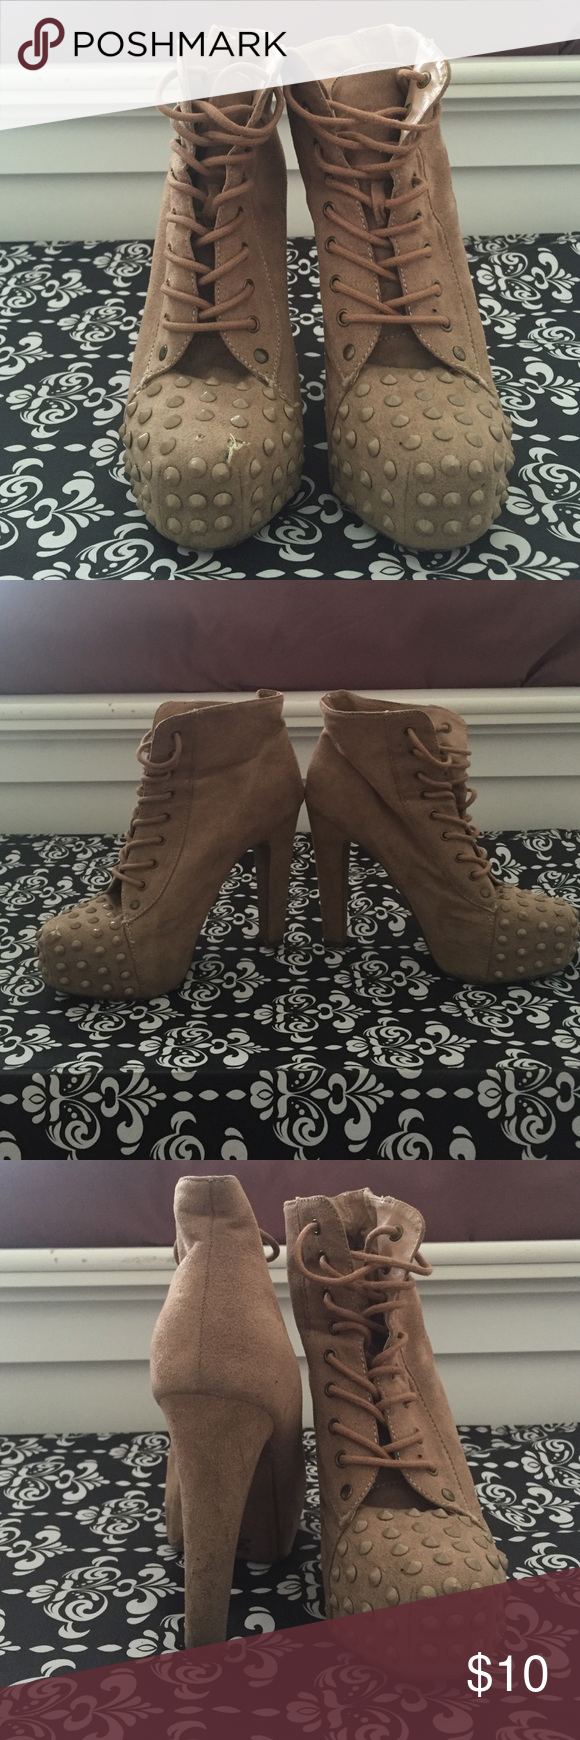 Tan high heel boot Has a small wear and tear in the front of the right boot, comfortable, casual Speed limit 98 Shoes Ankle Boots & Booties